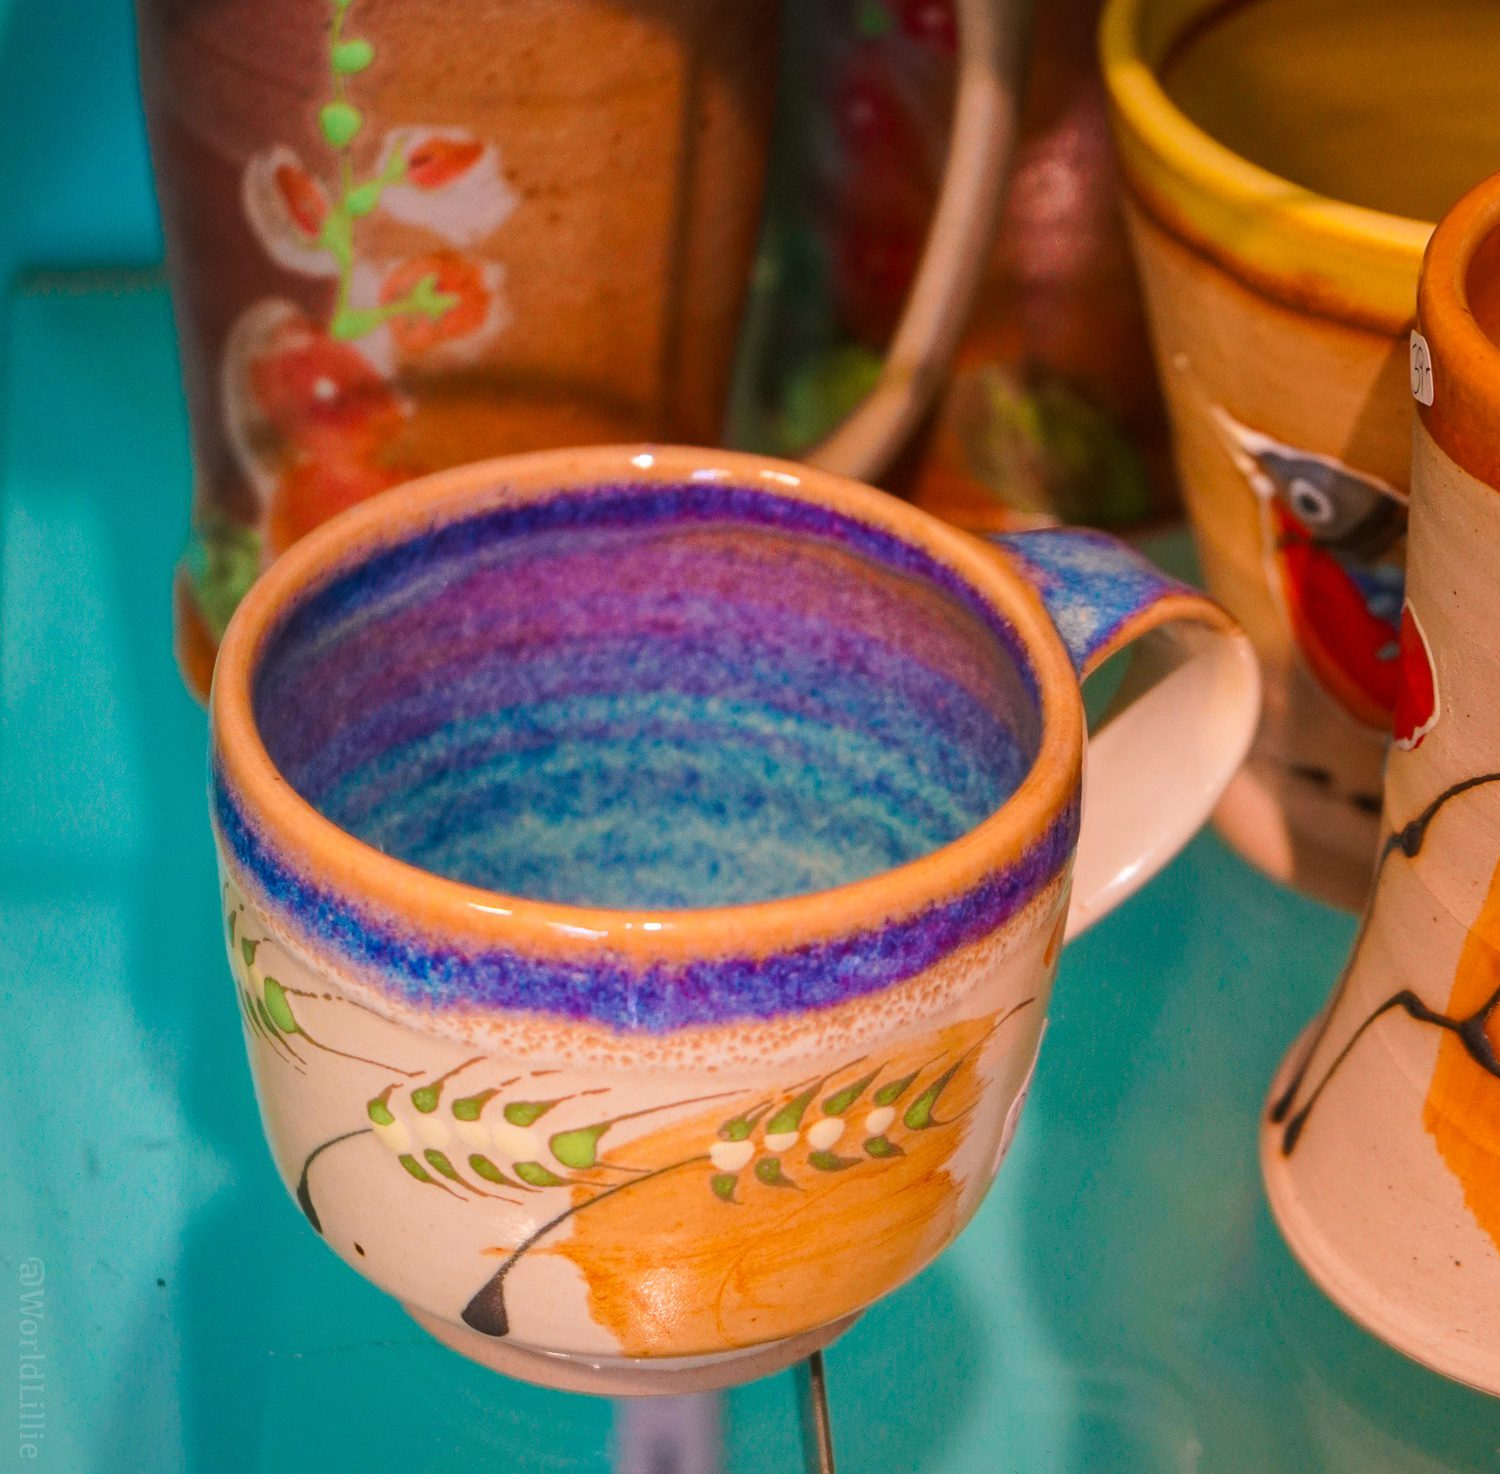 I love the teal and purple glaze inside this pottery.